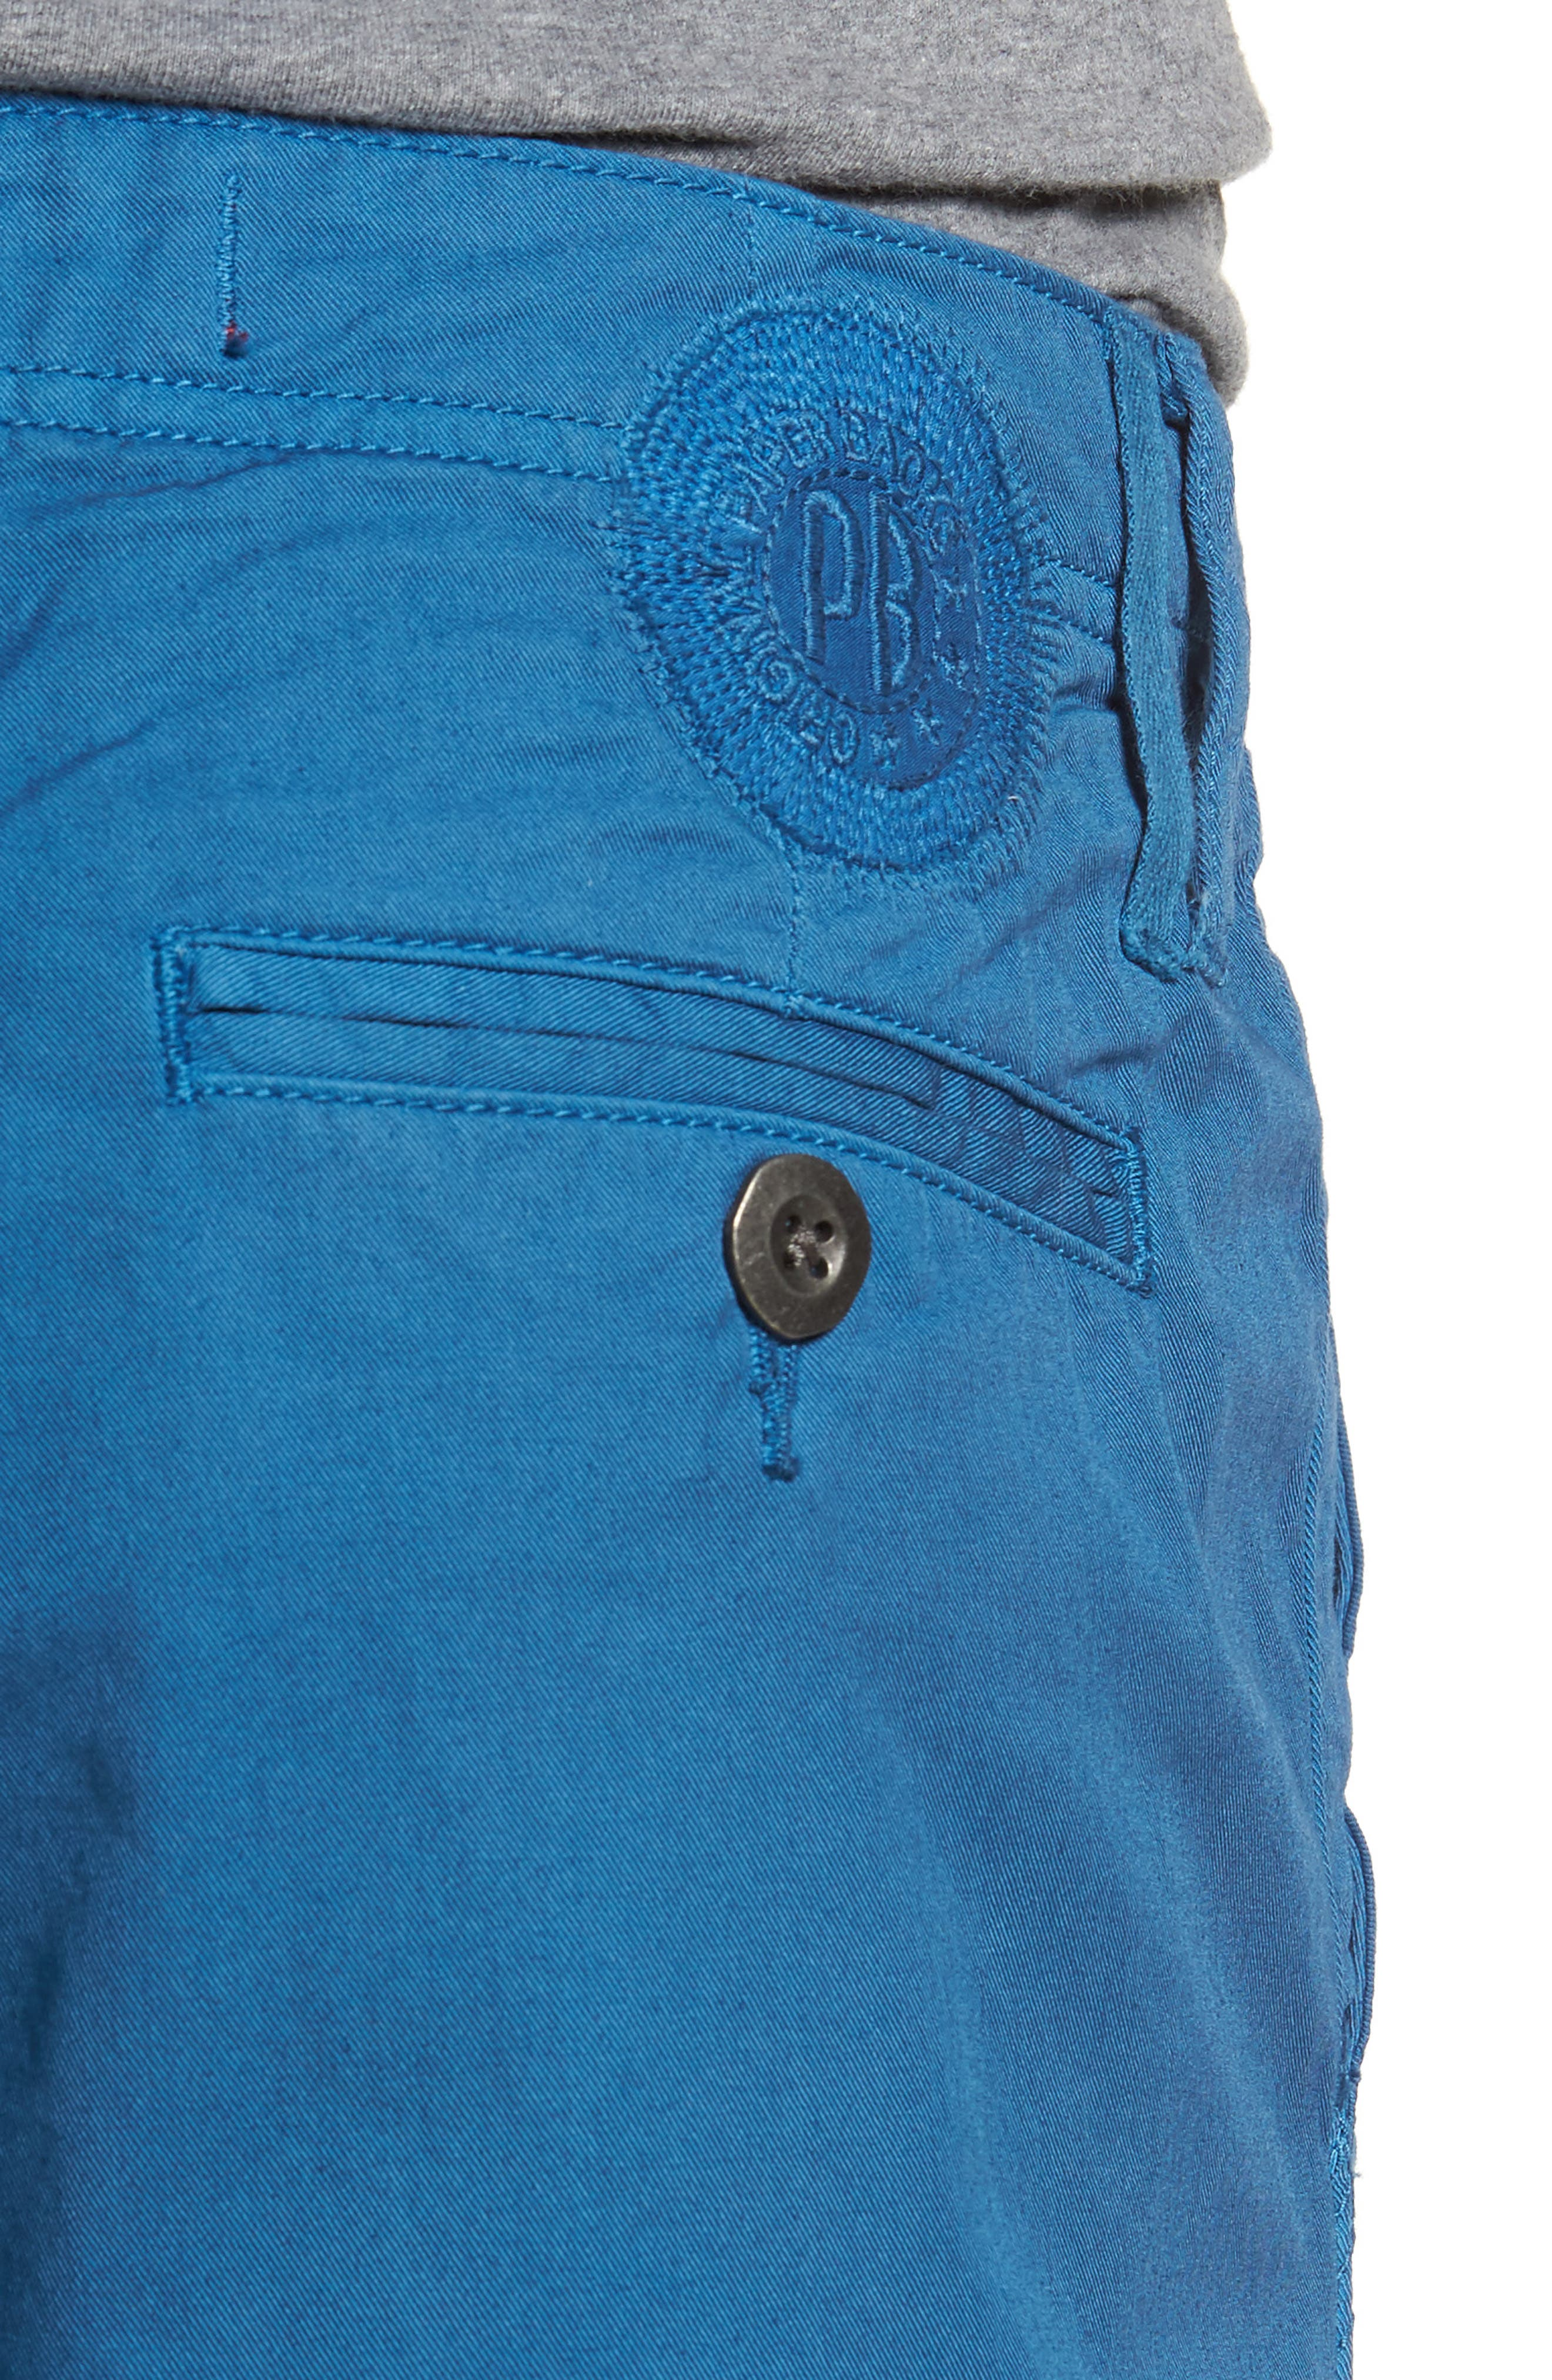 'Napa' Chino Shorts,                             Alternate thumbnail 52, color,